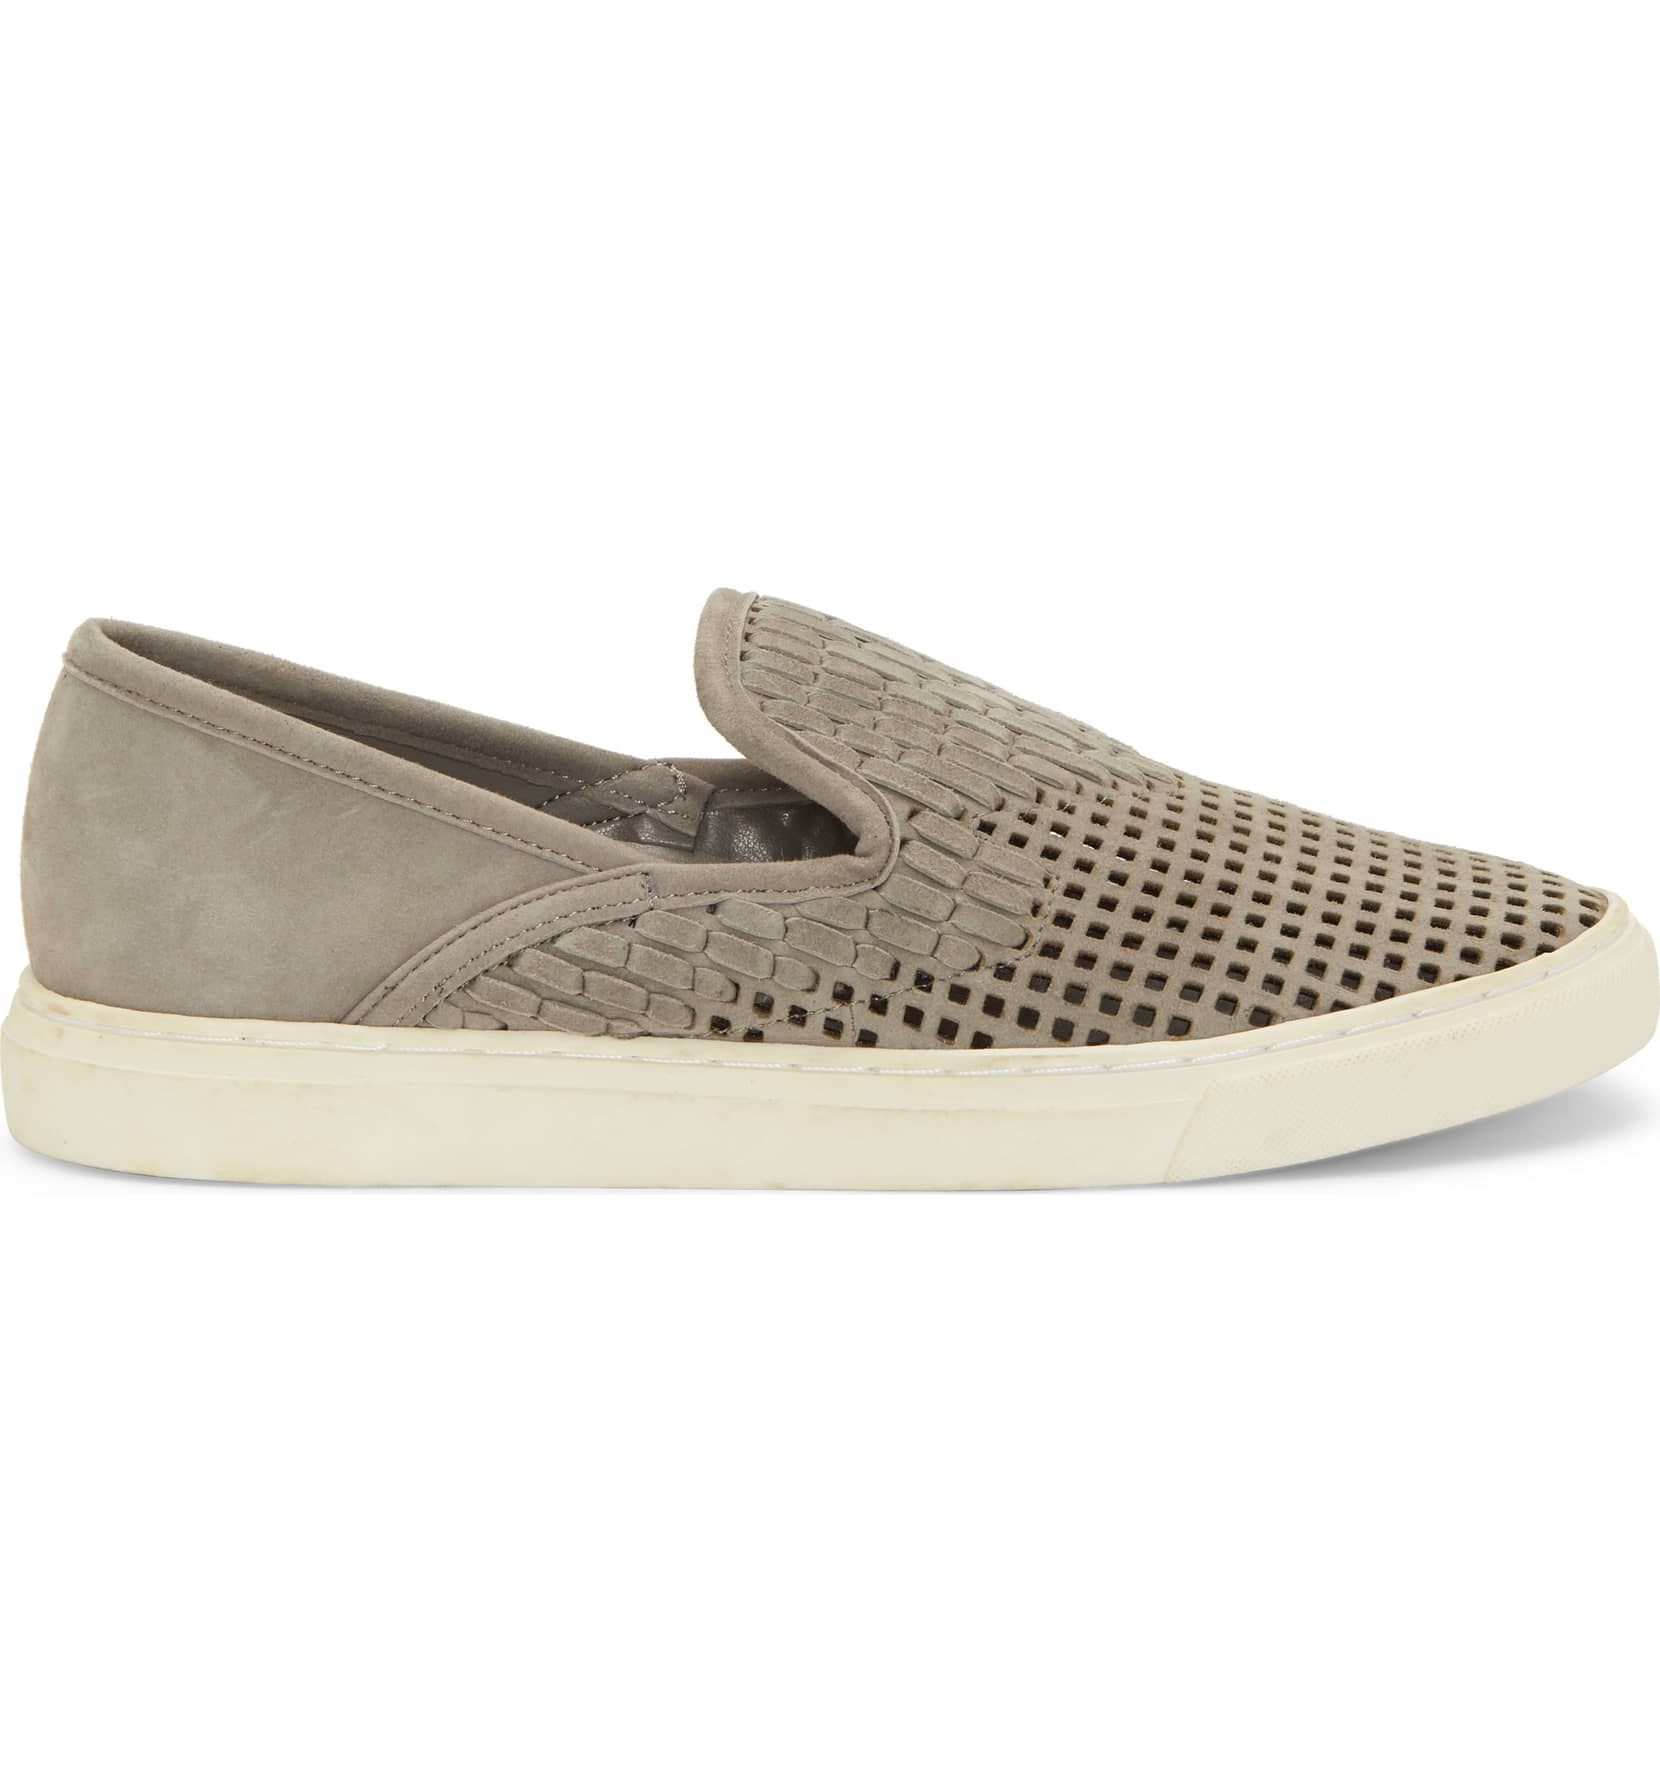 Vince-Camuto-Bristie-Storm-Grey-Leather-Woven-White-Sole-Slip-On-Sneakers thumbnail 7